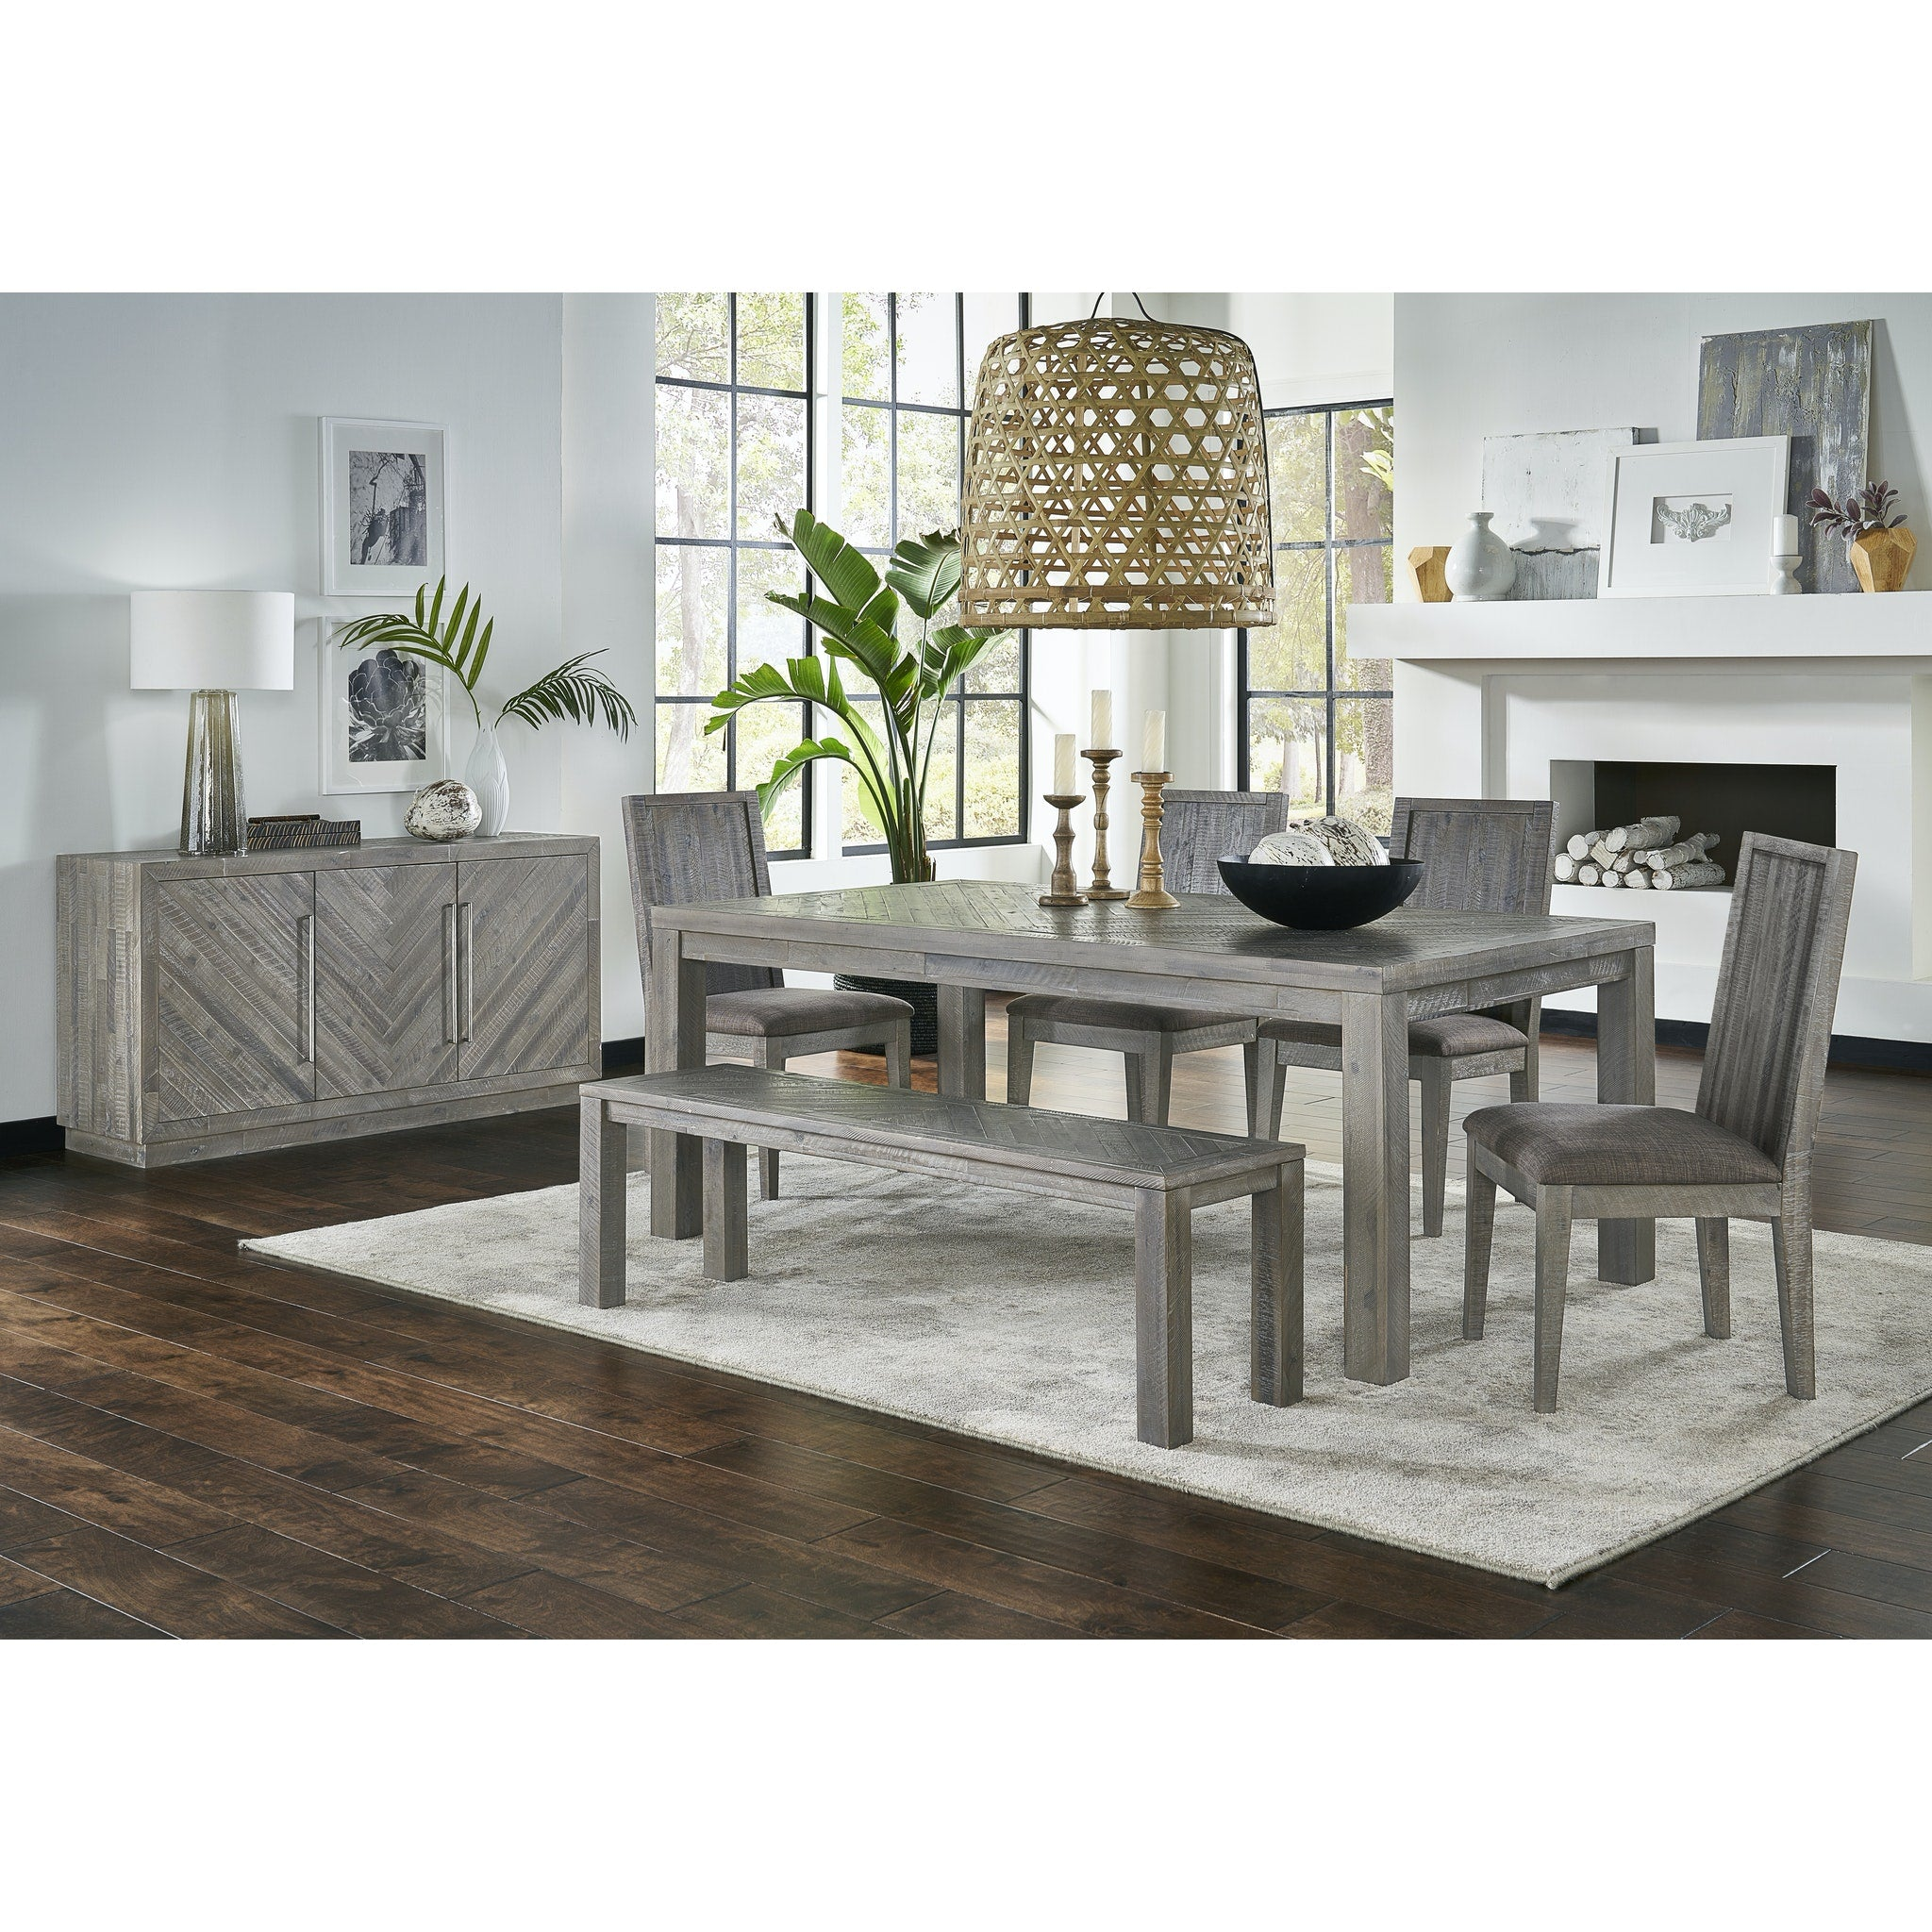 Alexandra Solid Wood Dining Bench in Rustic Latte